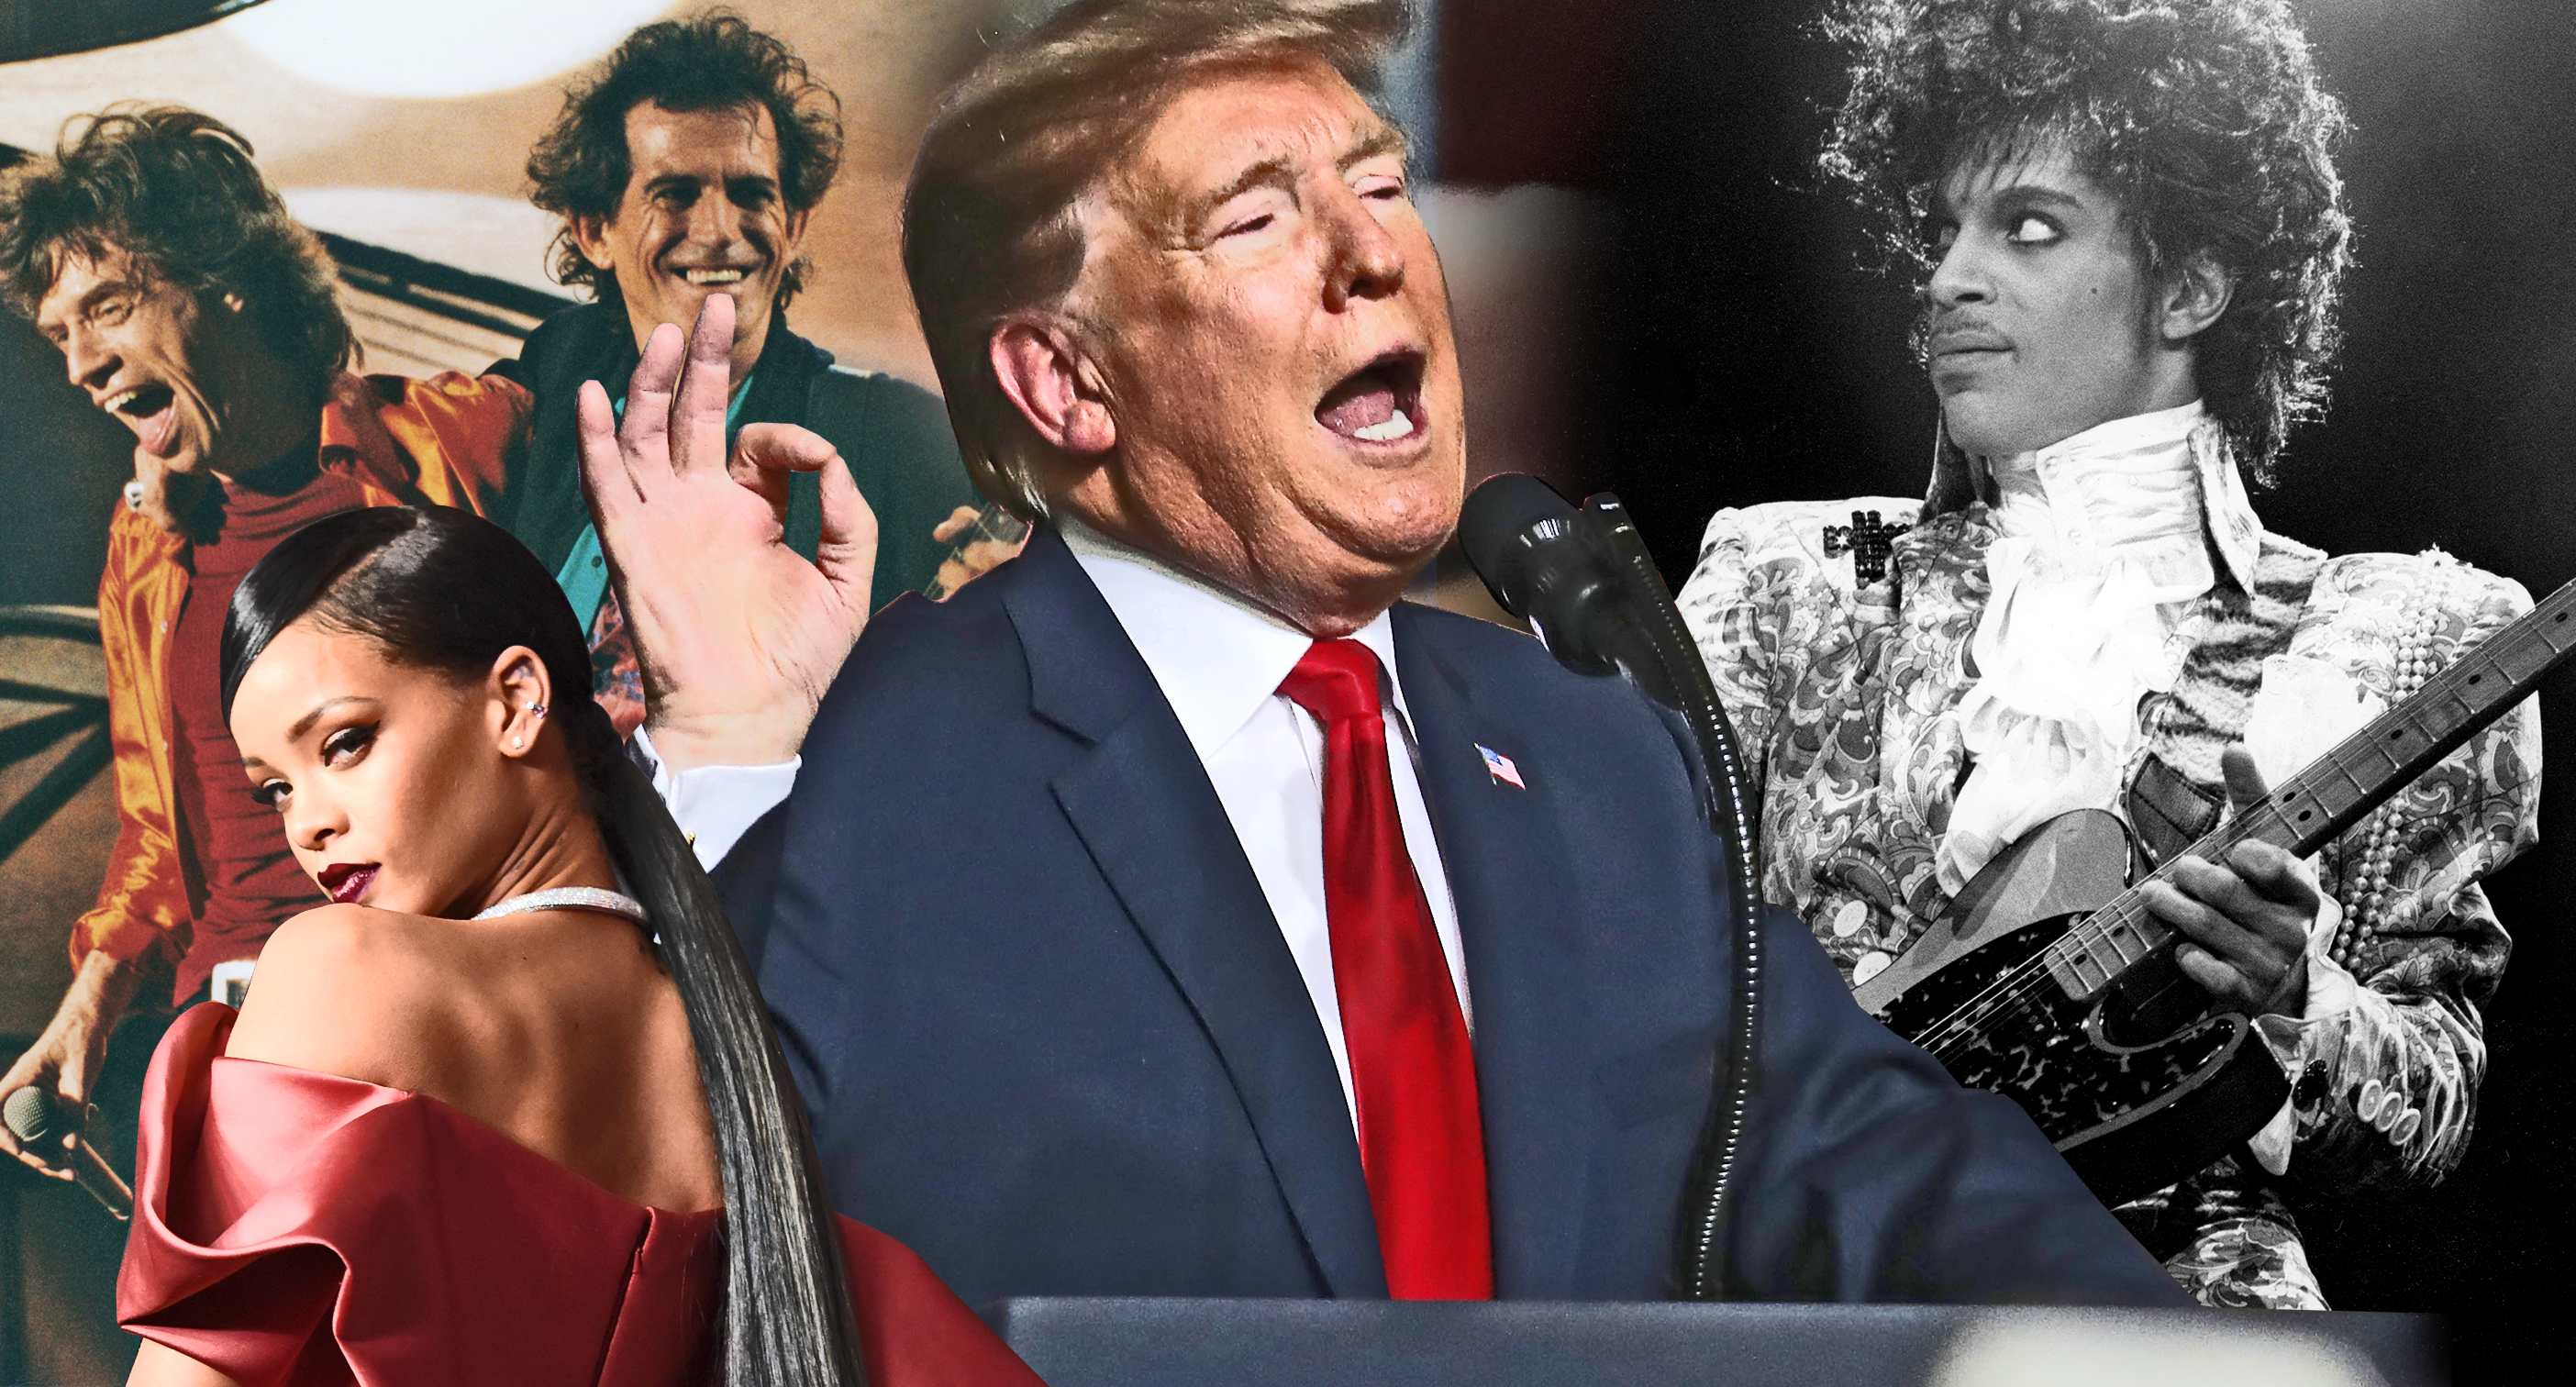 Prince estate calls out Trump for playing his music: Rihanna, the Rolling Stones and many more have done the same